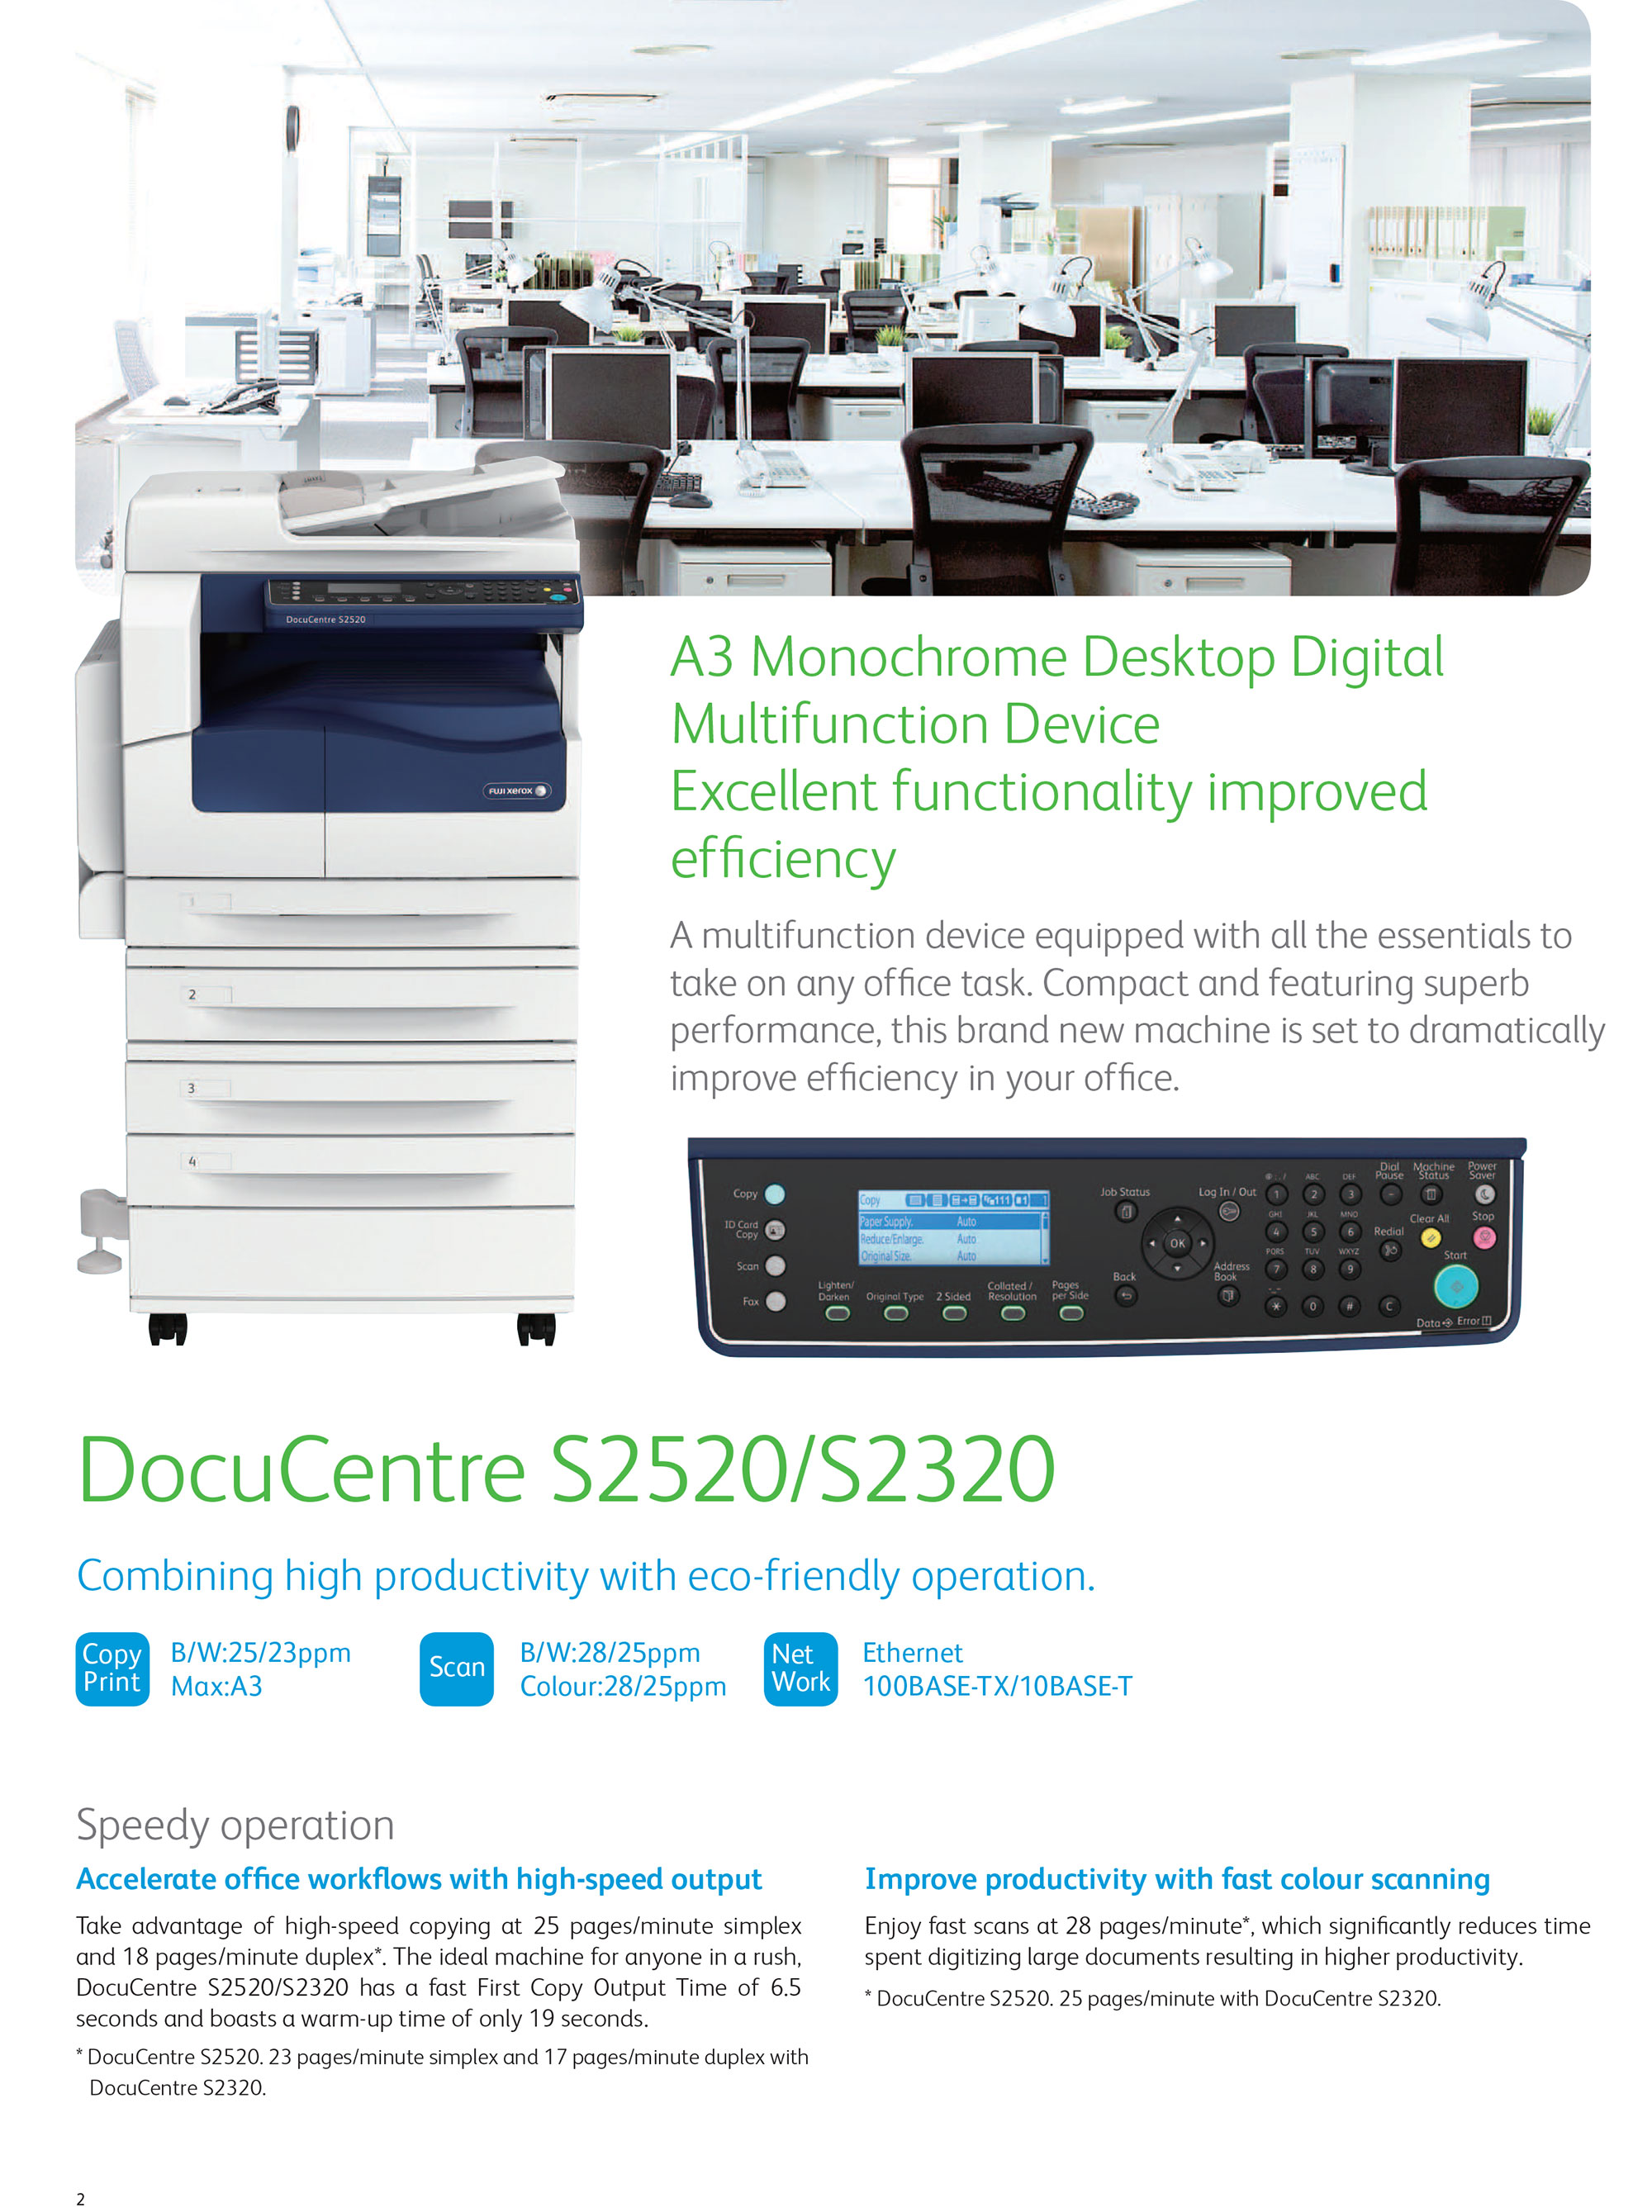 DocuCentre S2520/2320